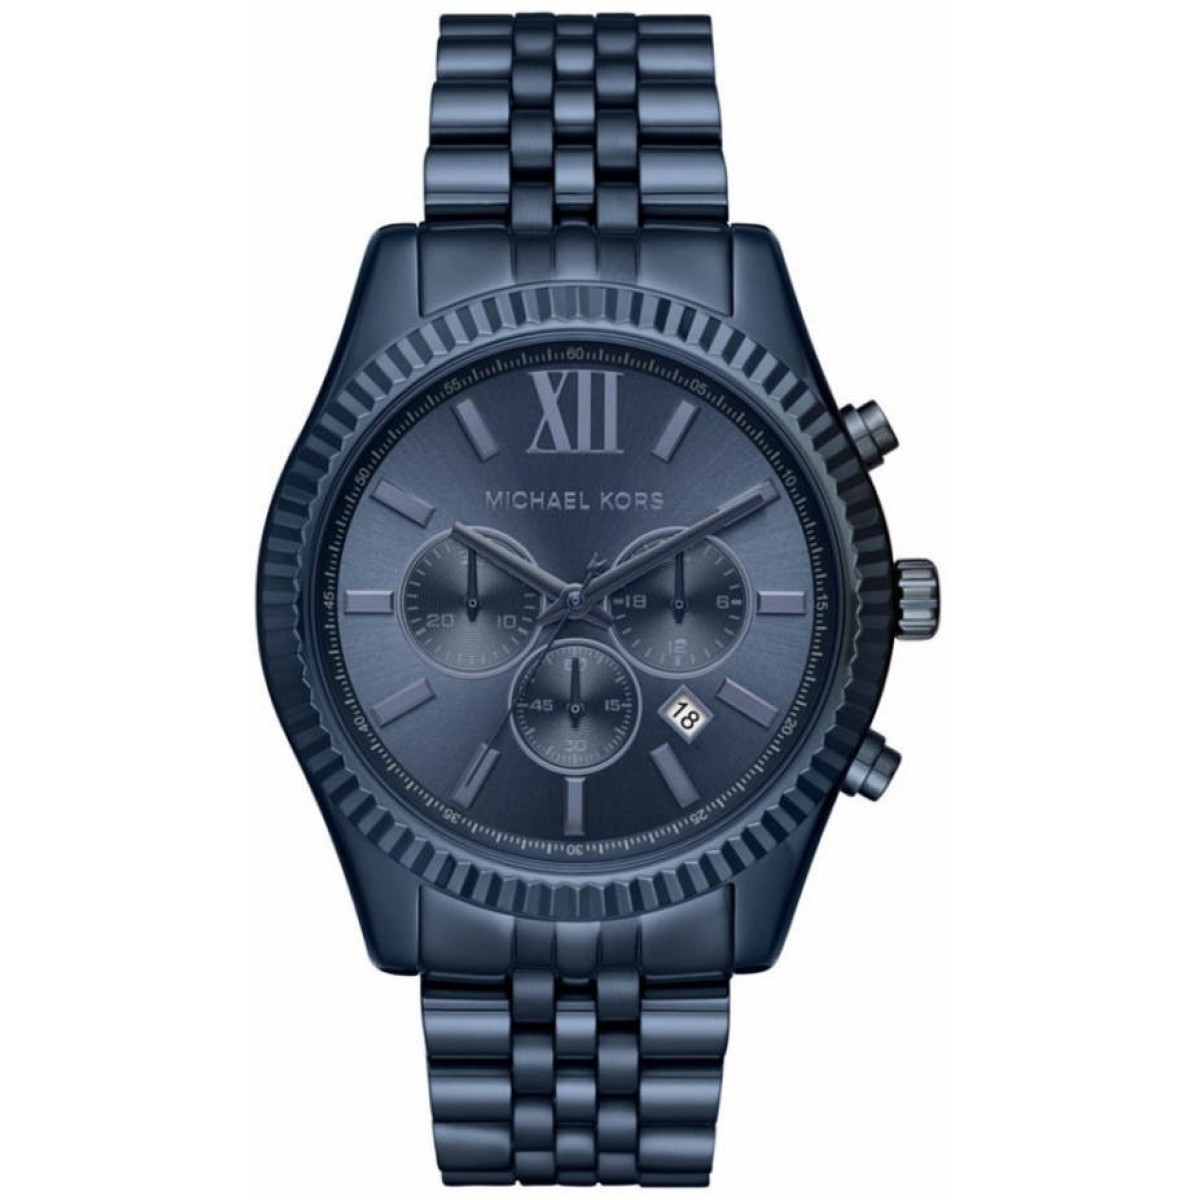 Mens Michael Kors LEXINGTON Chronograph Watch MK8480